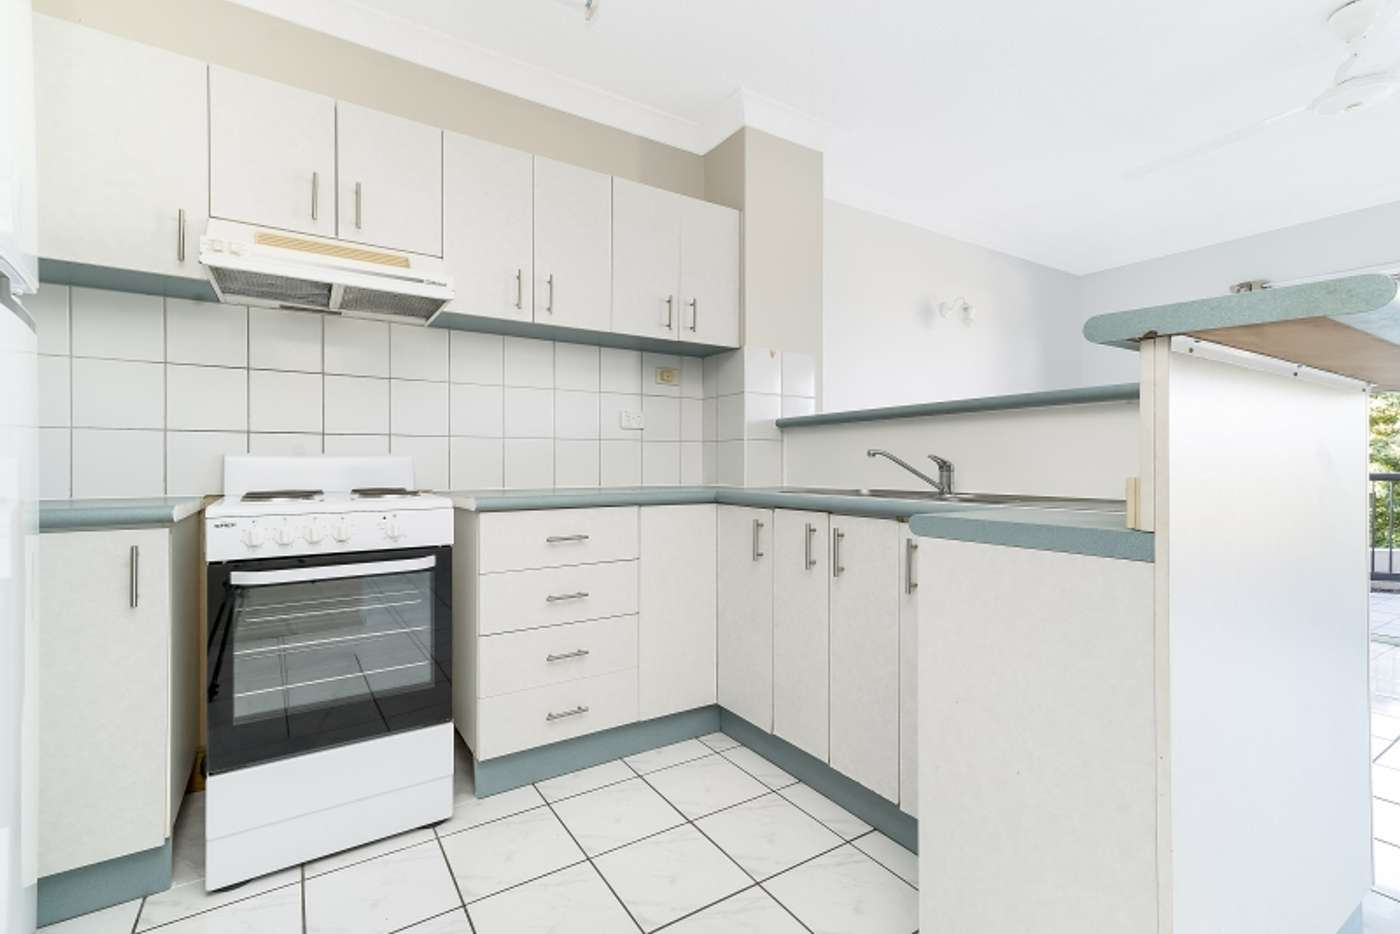 Sixth view of Homely apartment listing, 11/65 Aralia Street, Nightcliff NT 810